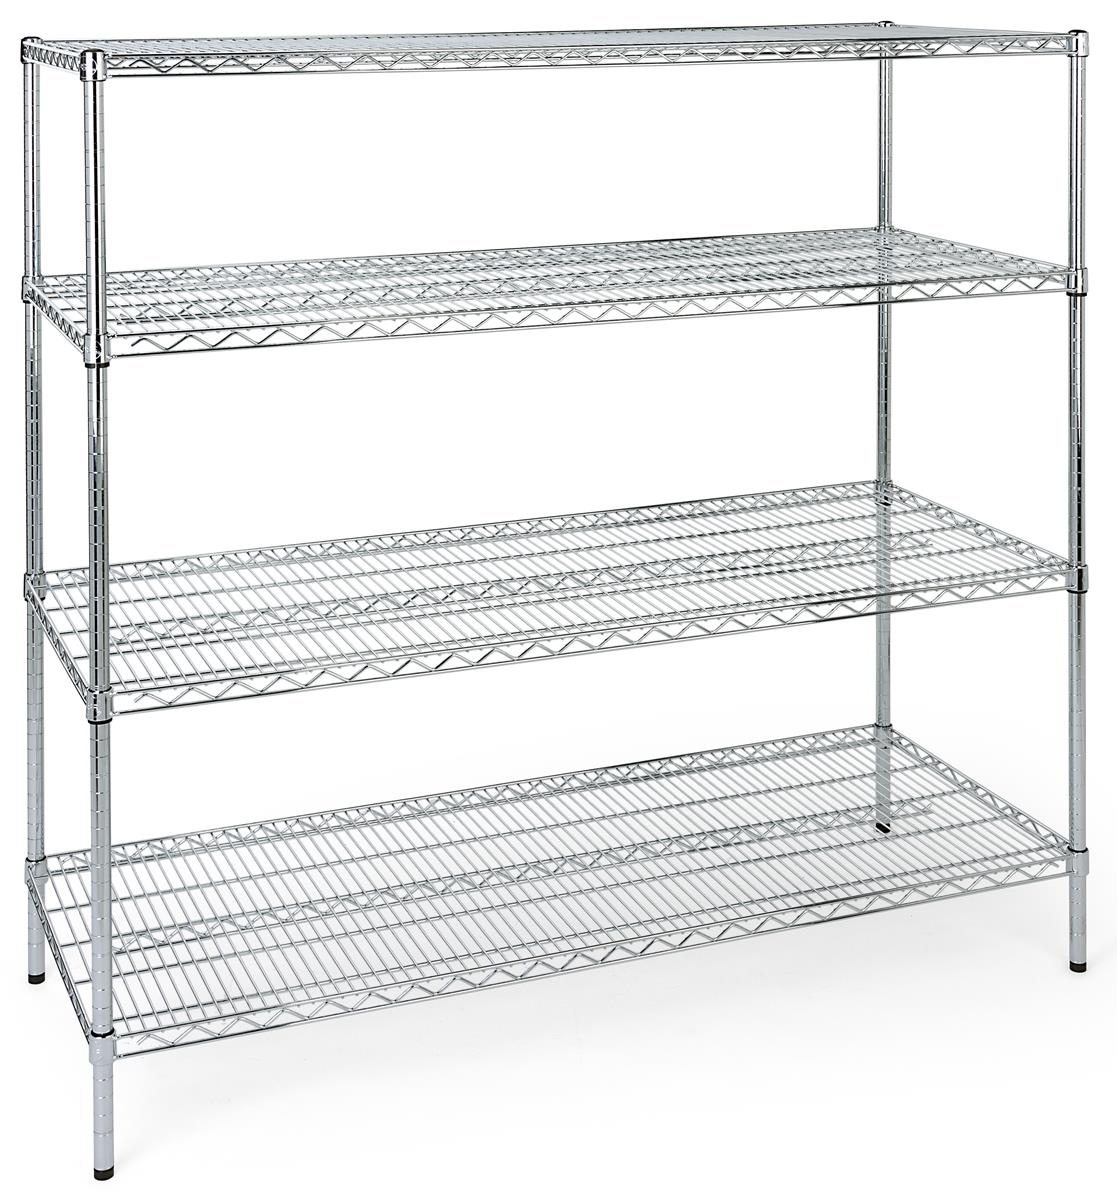 4 Tiered Wire Rack Display Floor Stand 60 W Adjustable Shelves Chrome